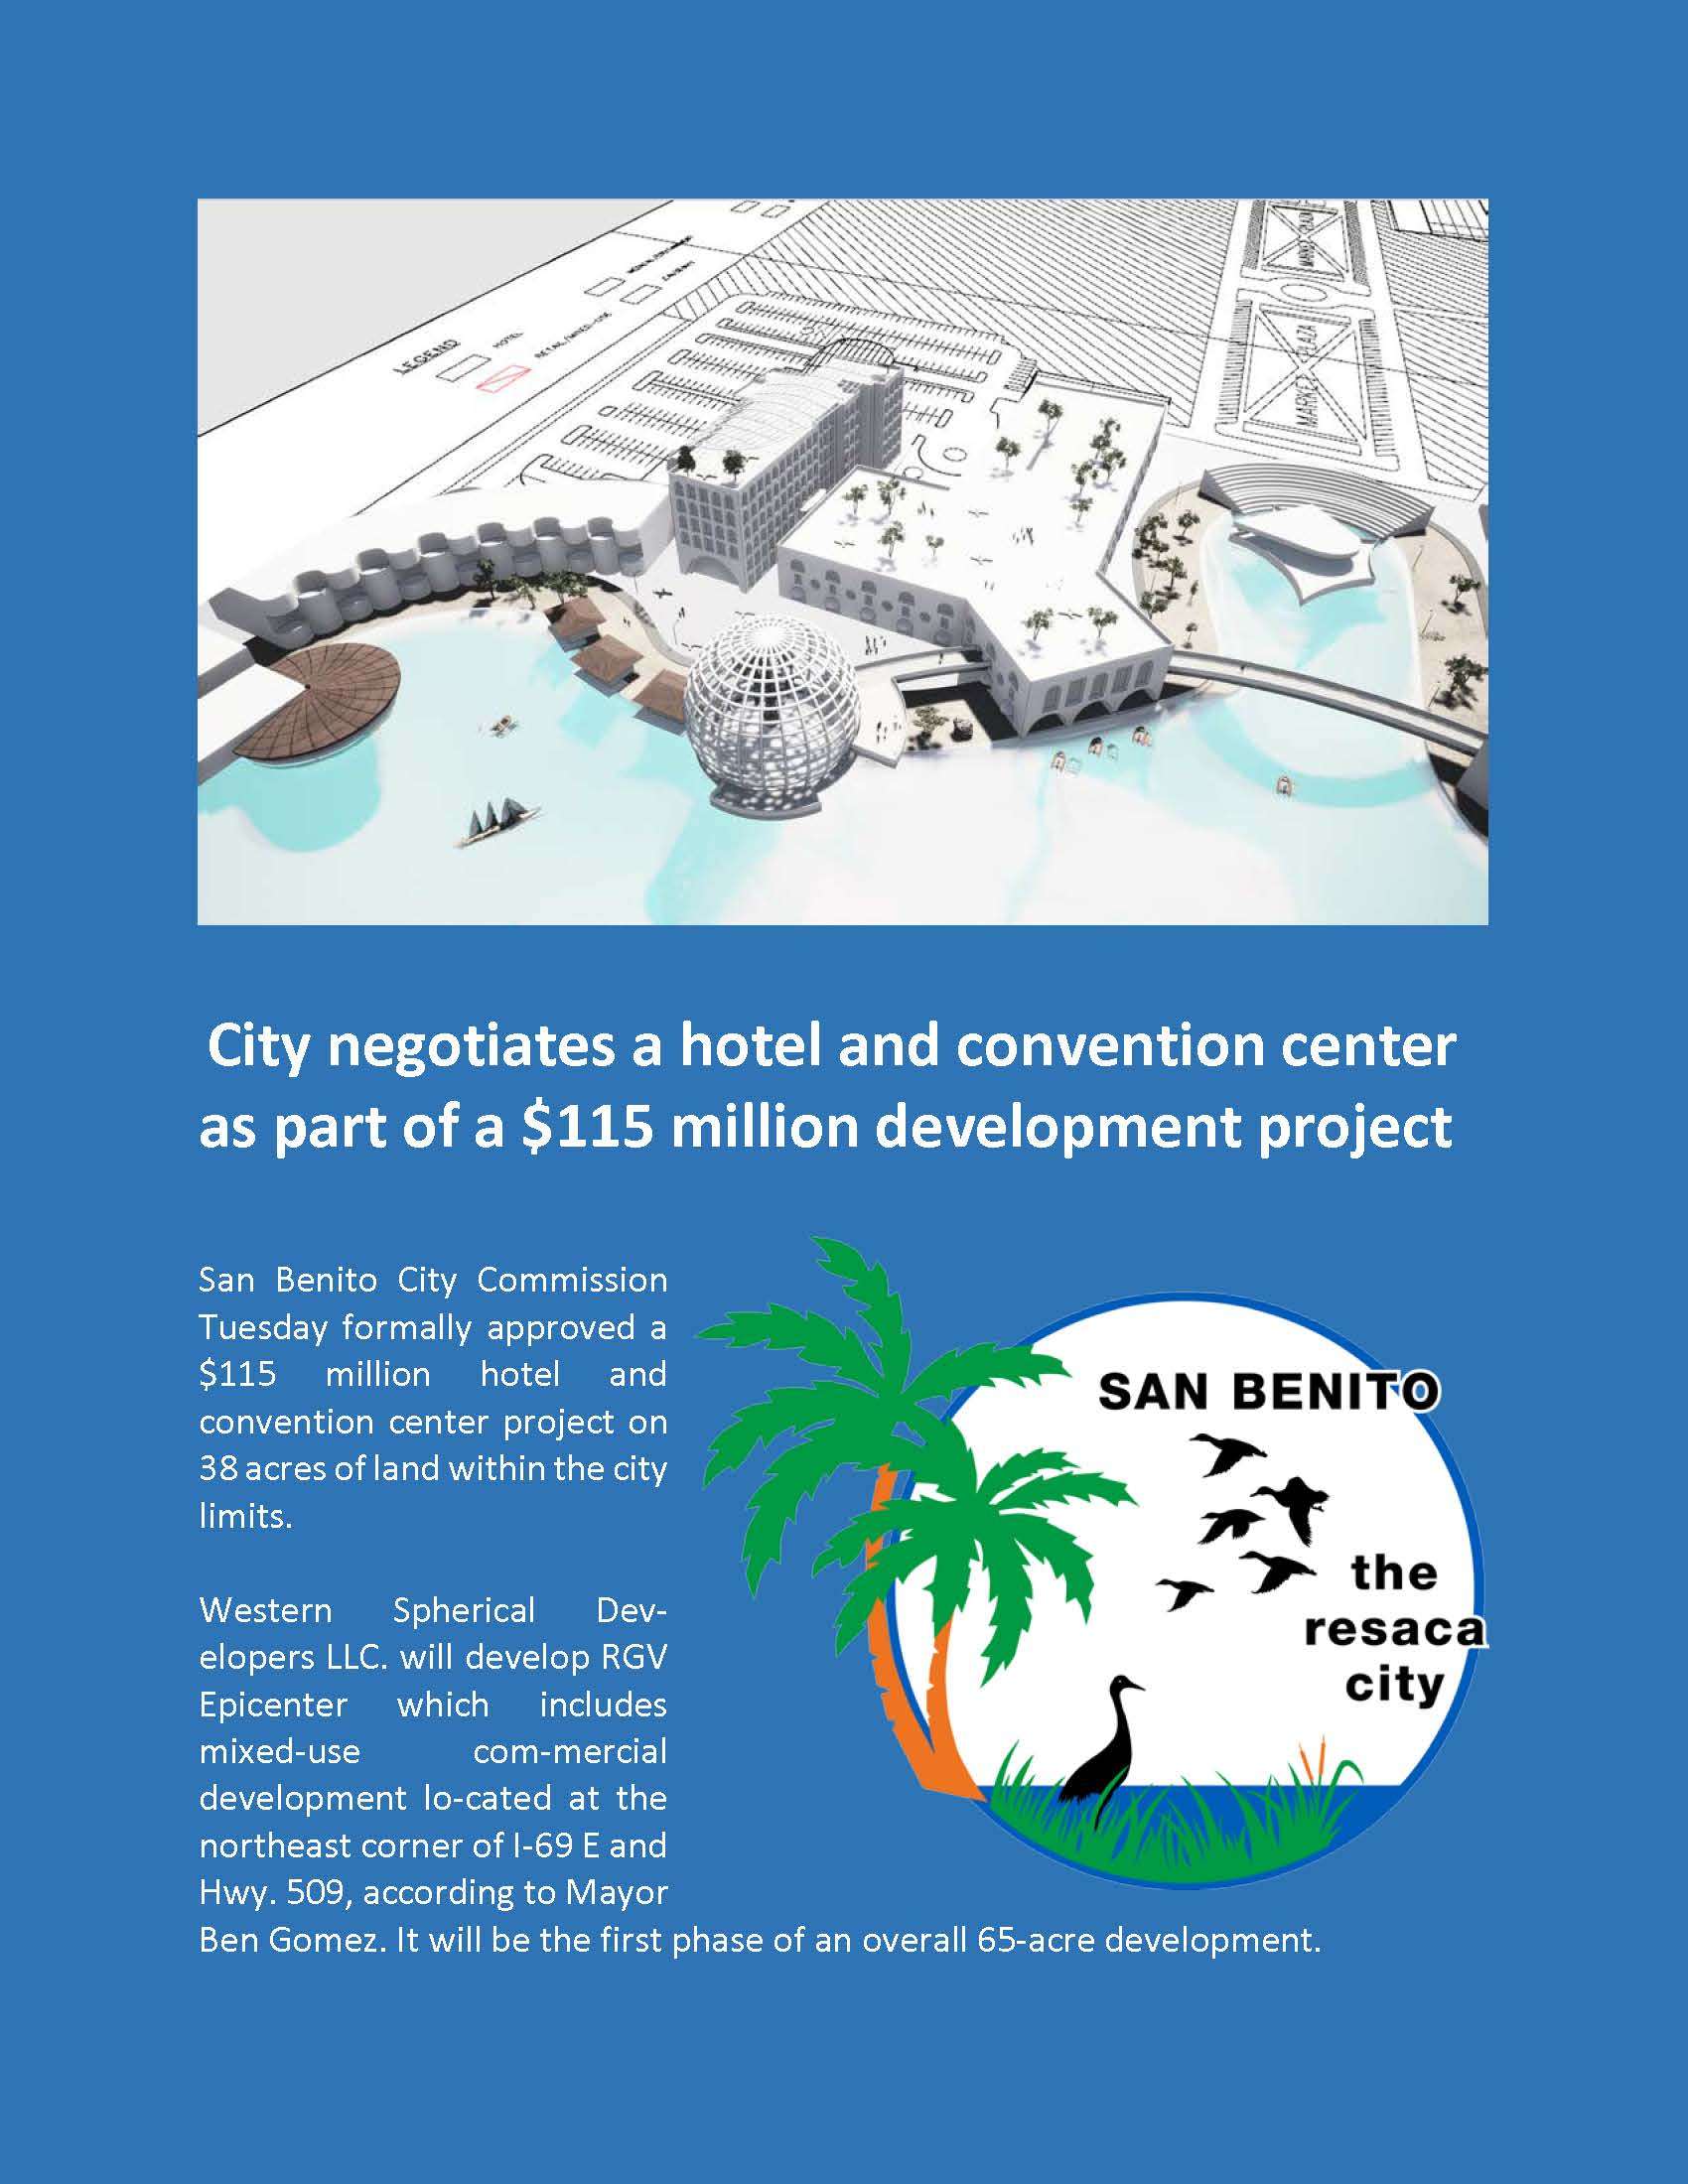 City negotiates a hotel and convention center